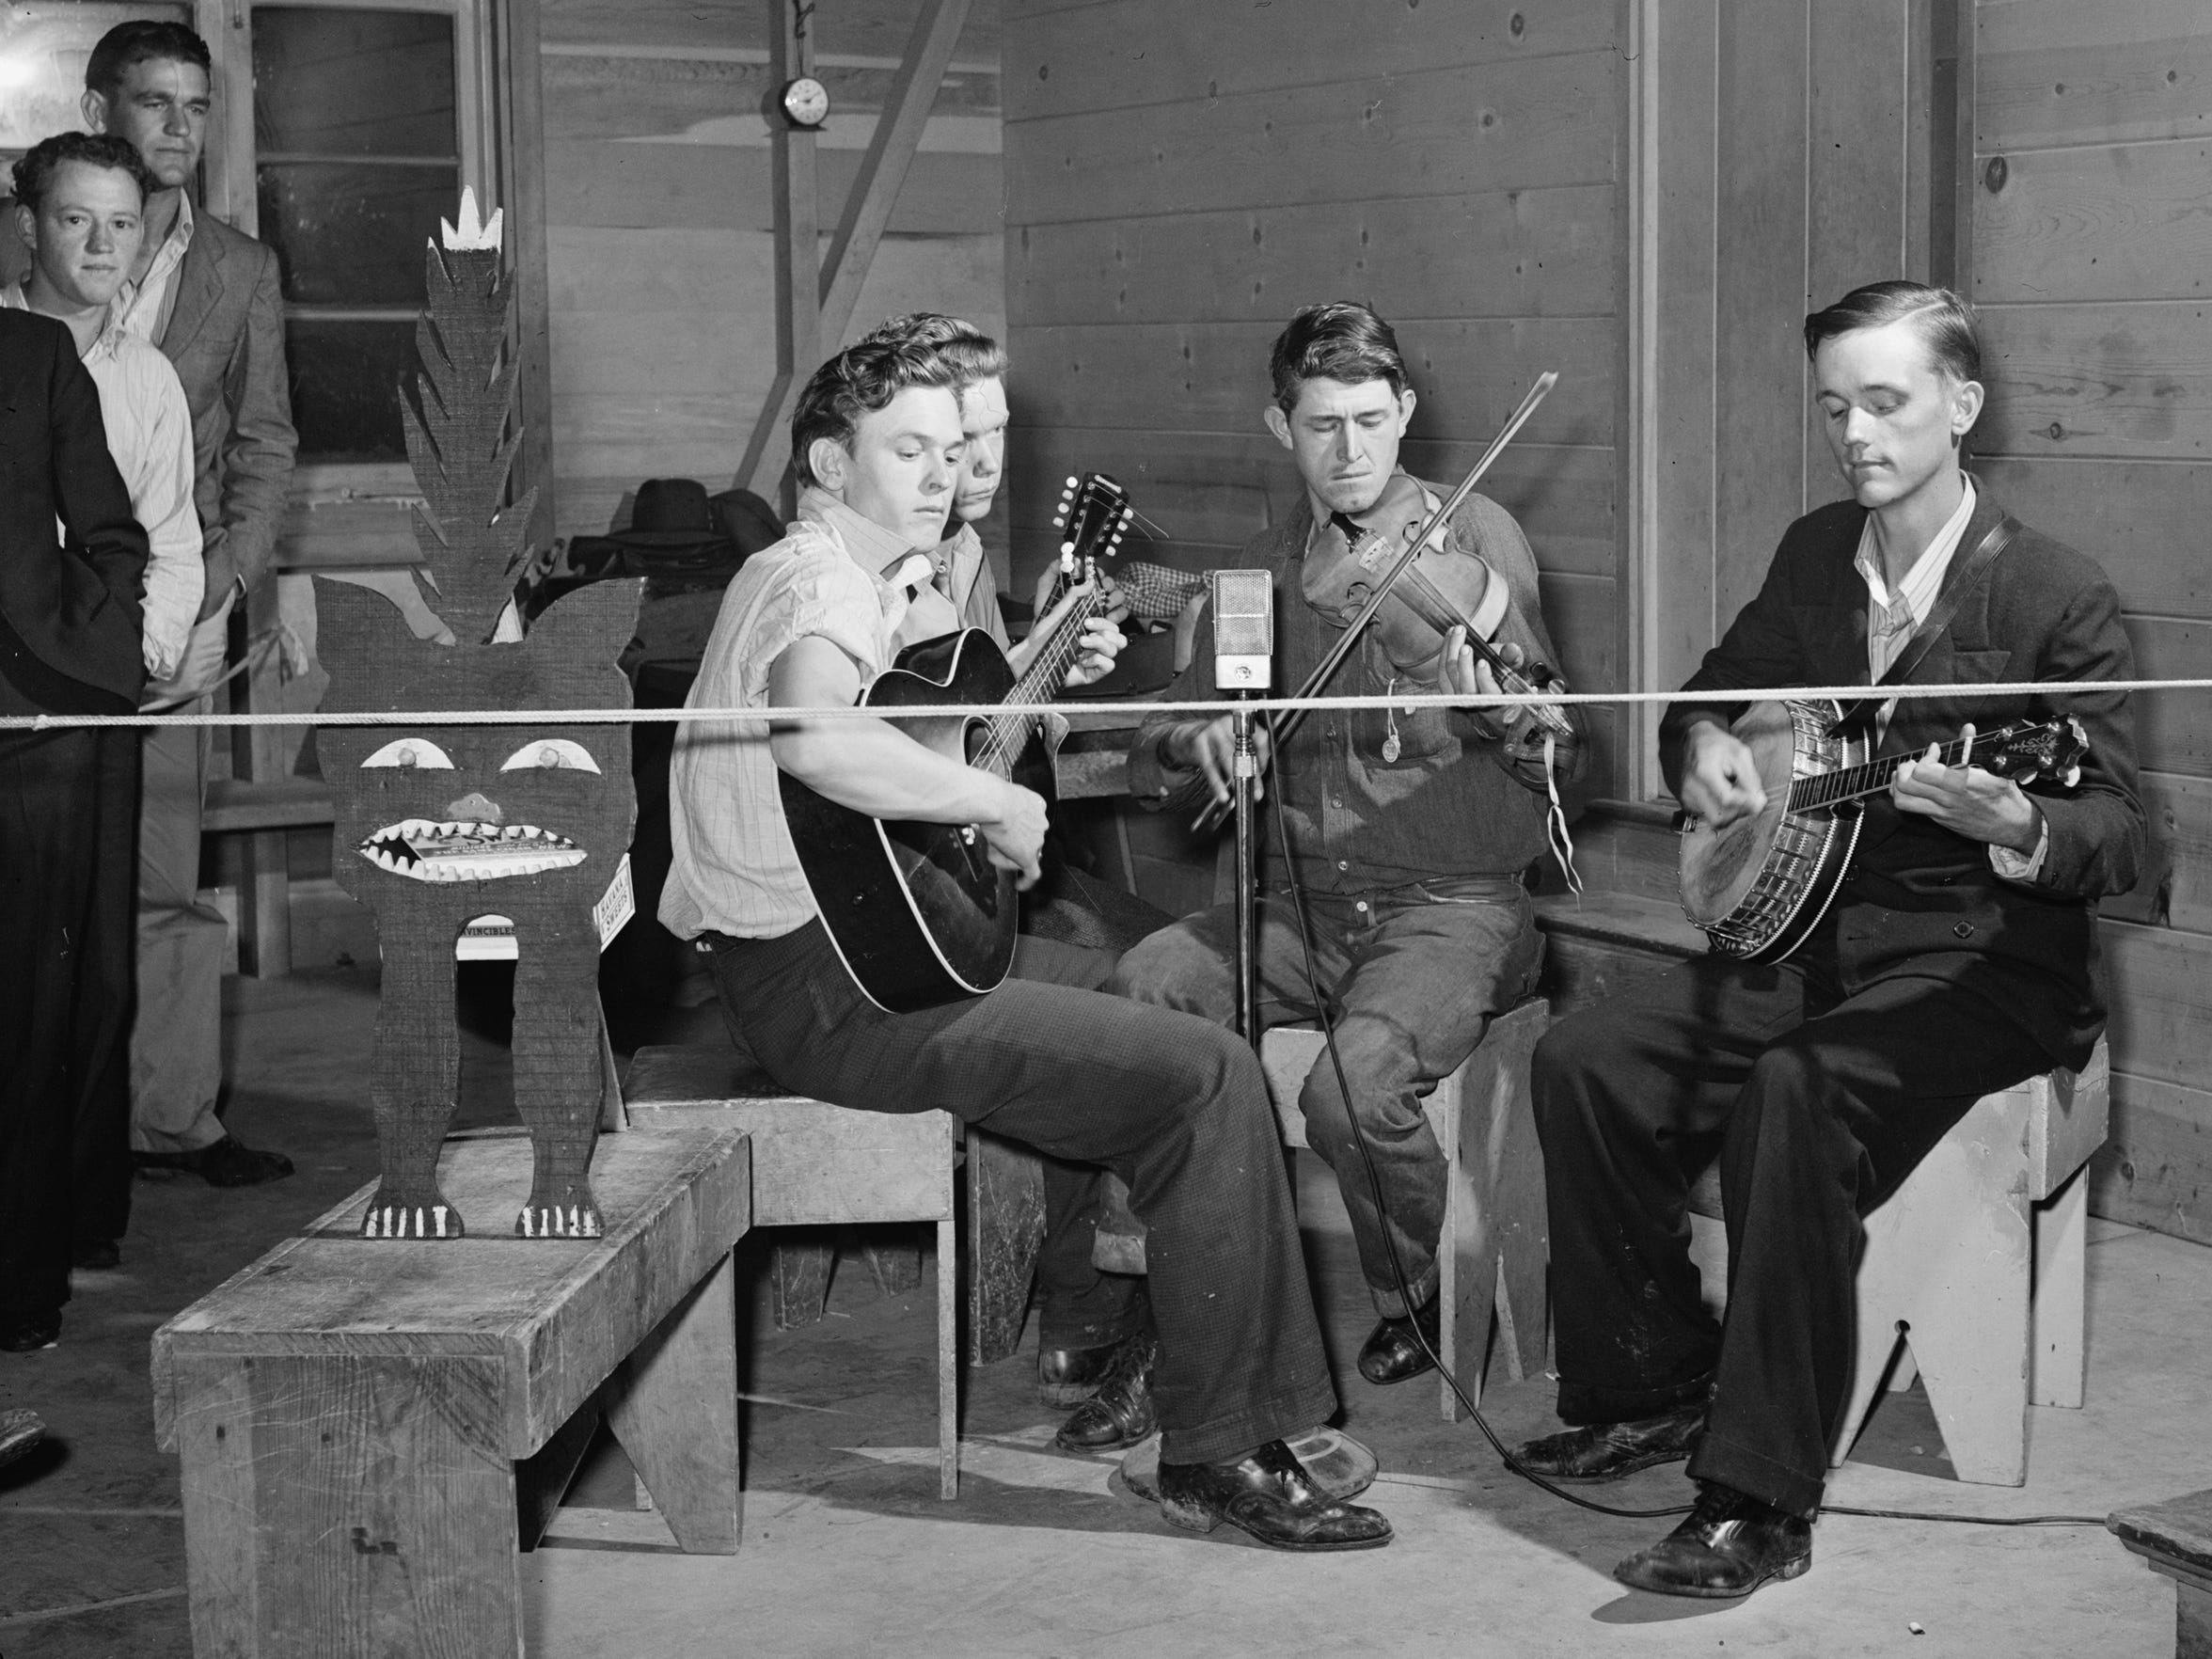 A string band plays at a Saturday night dance at a Tulare migrant camp in March, 1940. The kitty, at left, is ready for contributions. Fiddles, guitars and banjos were common instruments among Dust Bowl migrants to the Central Valley for a simpler country sound than what was popular back in Nashville at the time.